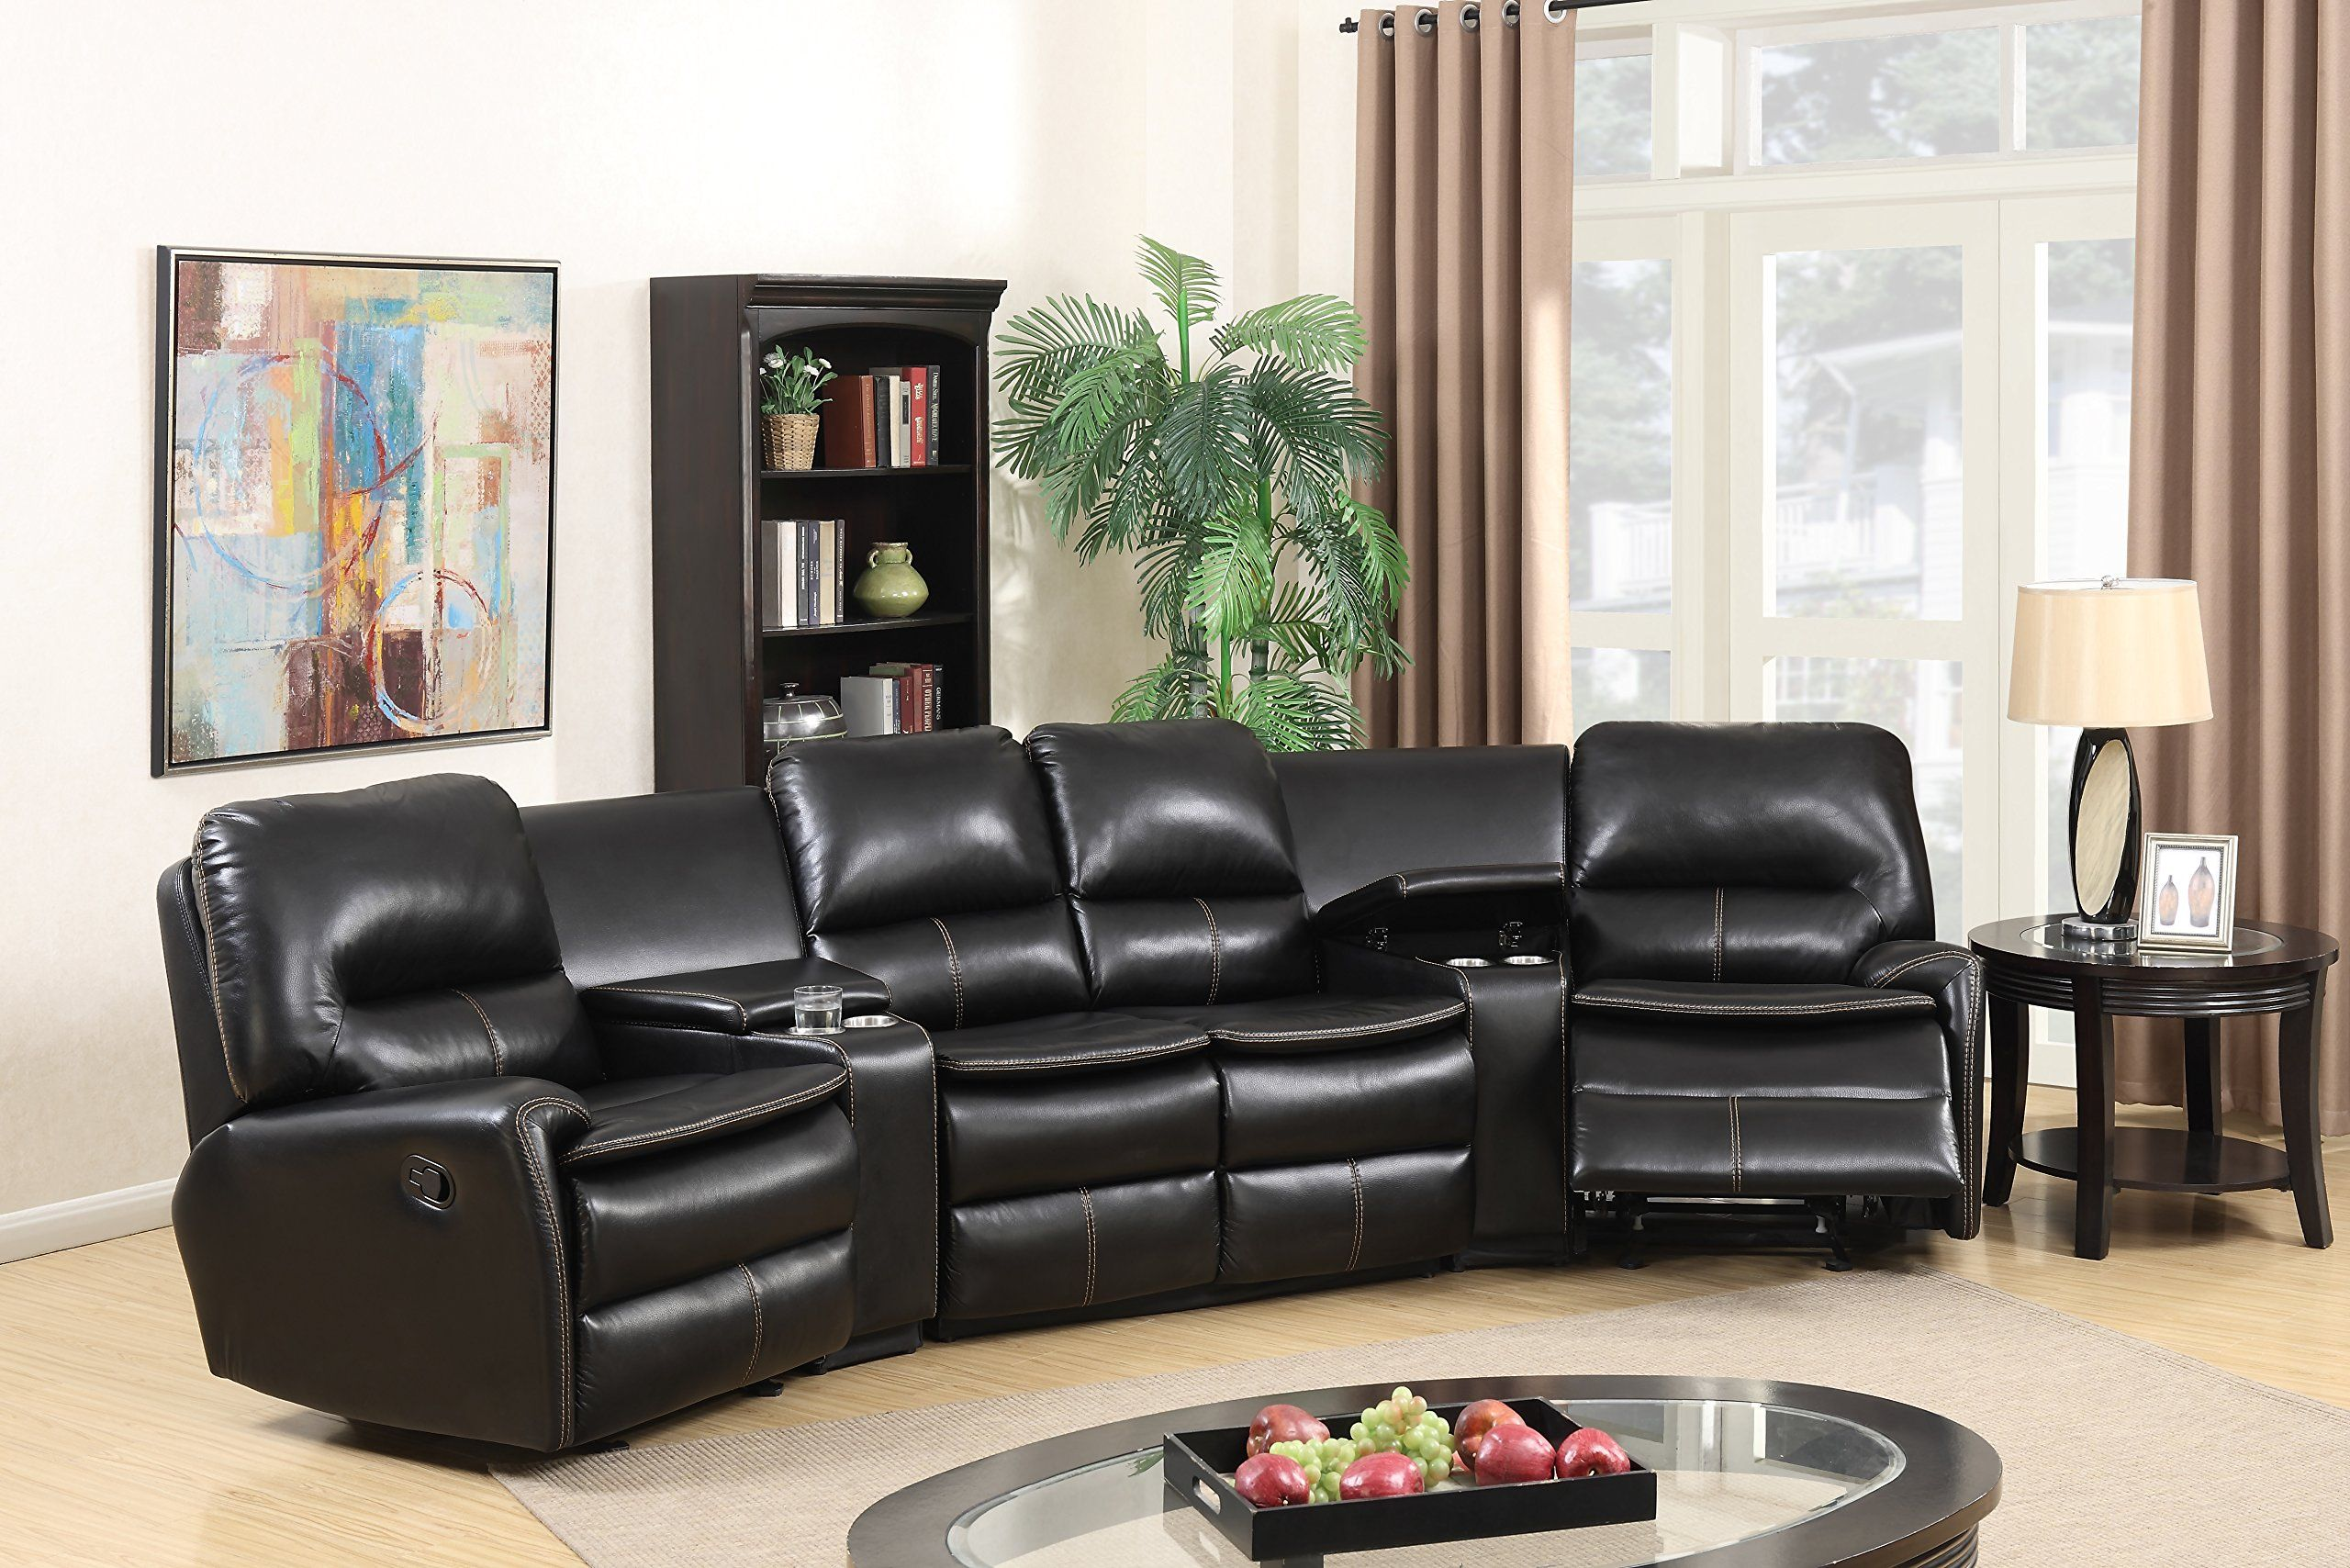 Best Master Furniture 8500 5 Piece Saratoga Springs Living